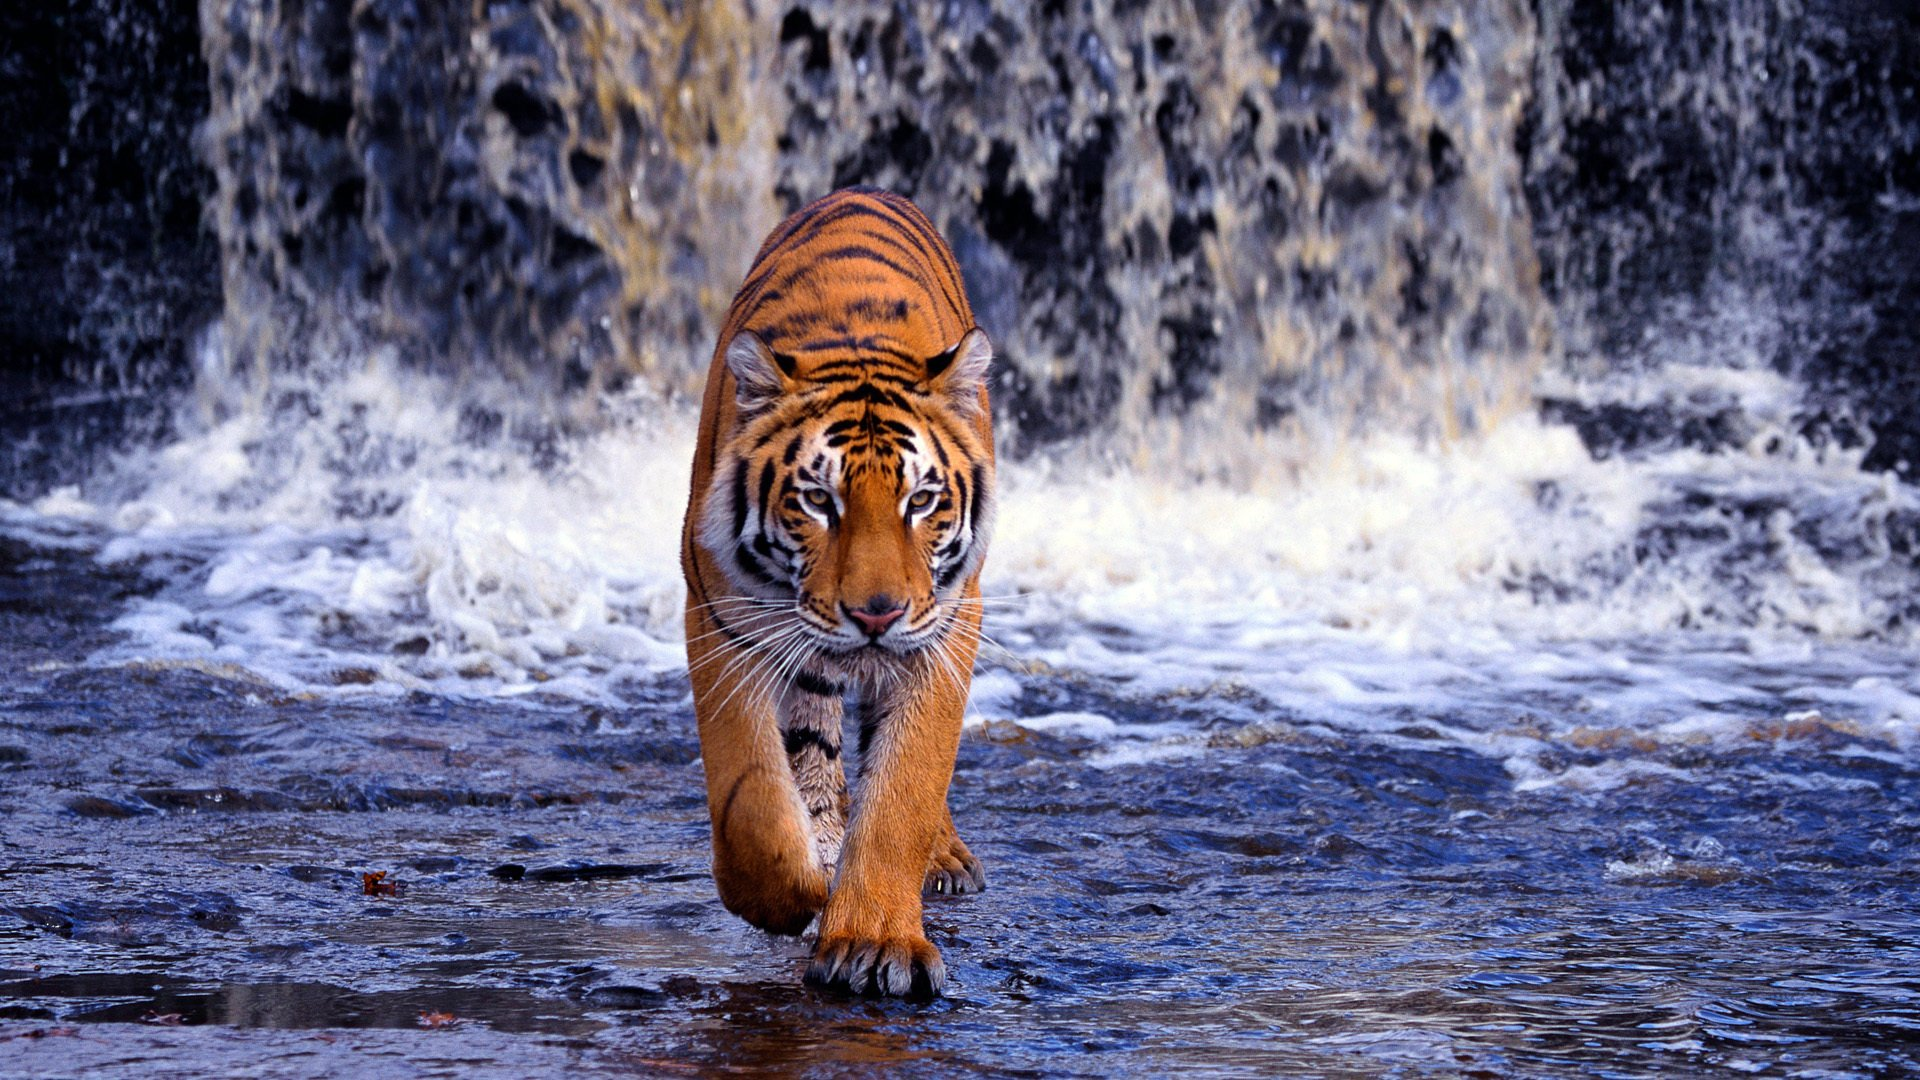 HD Tiger Wallpaper Download